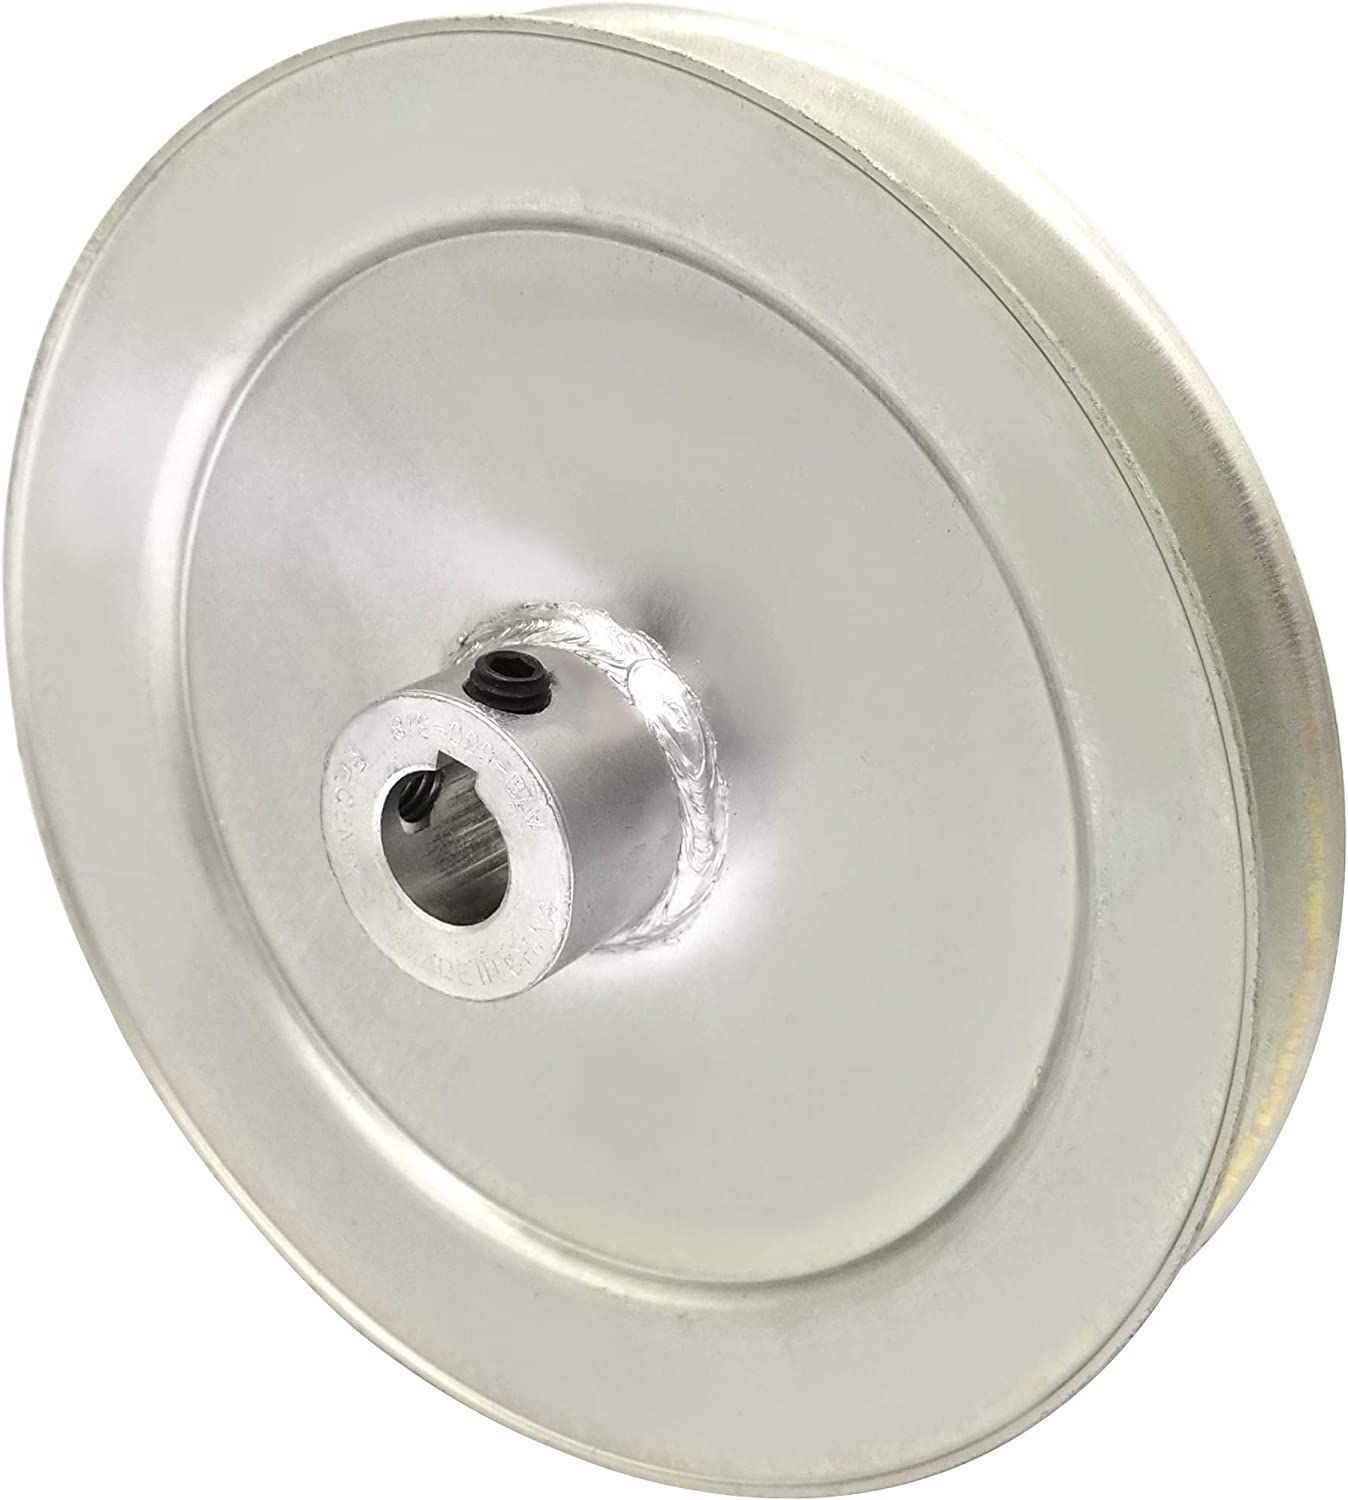 Phoenix V-Belt Pulley - 5/8in. Bore, 6in. Outside Dia. Model Number 260058